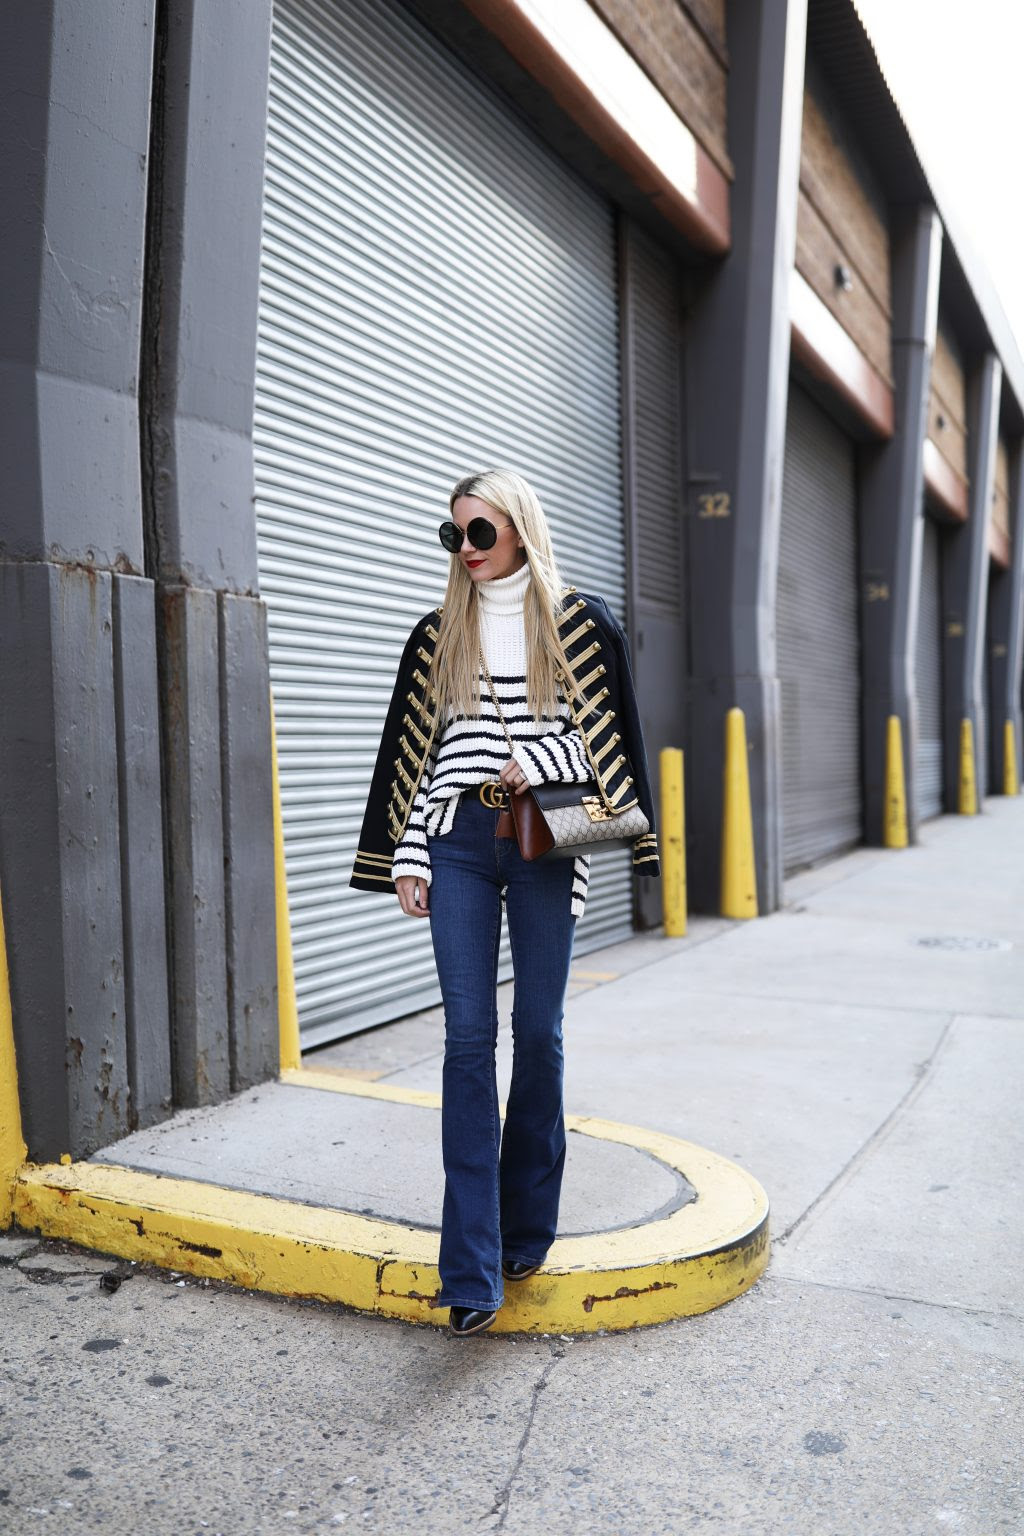 atlantic-pacific-blog-ny-denim-striped-sweater-band-jacket-gold-gucci-bag